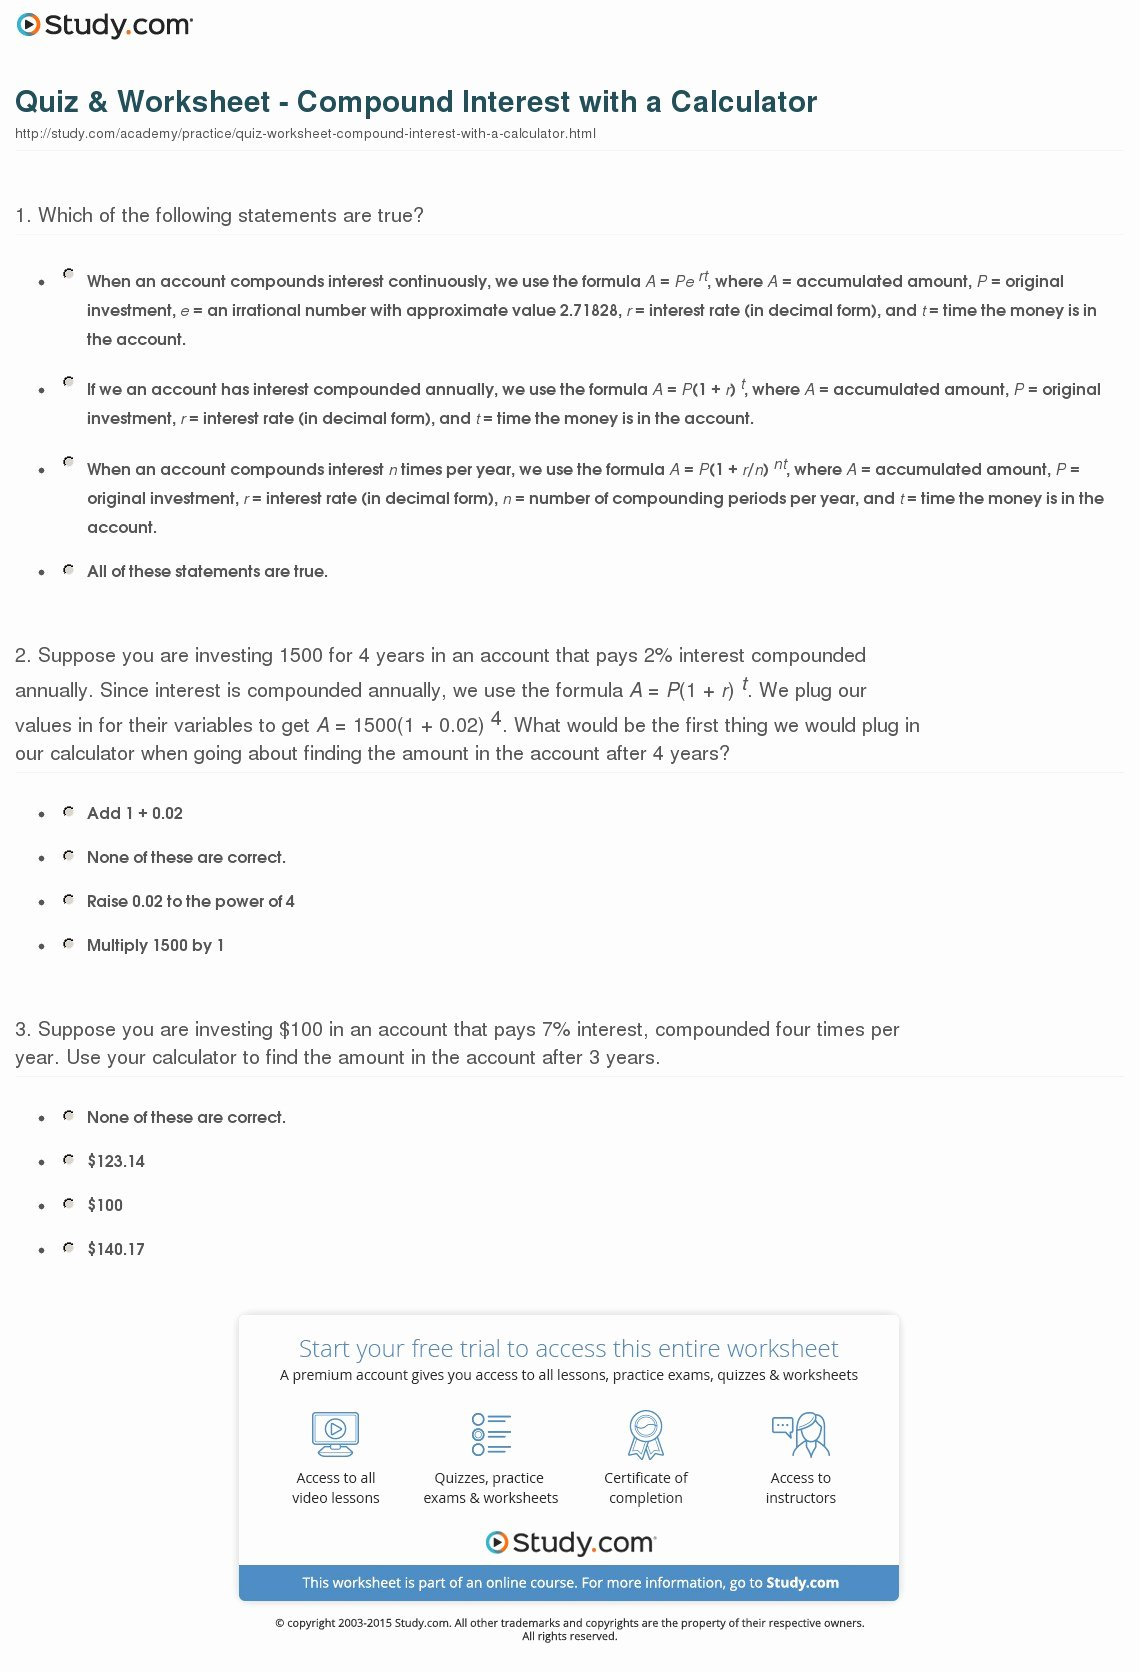 Simple and Compound Interest Worksheet Awesome Investing Calculator for Windows 7 32bit Last